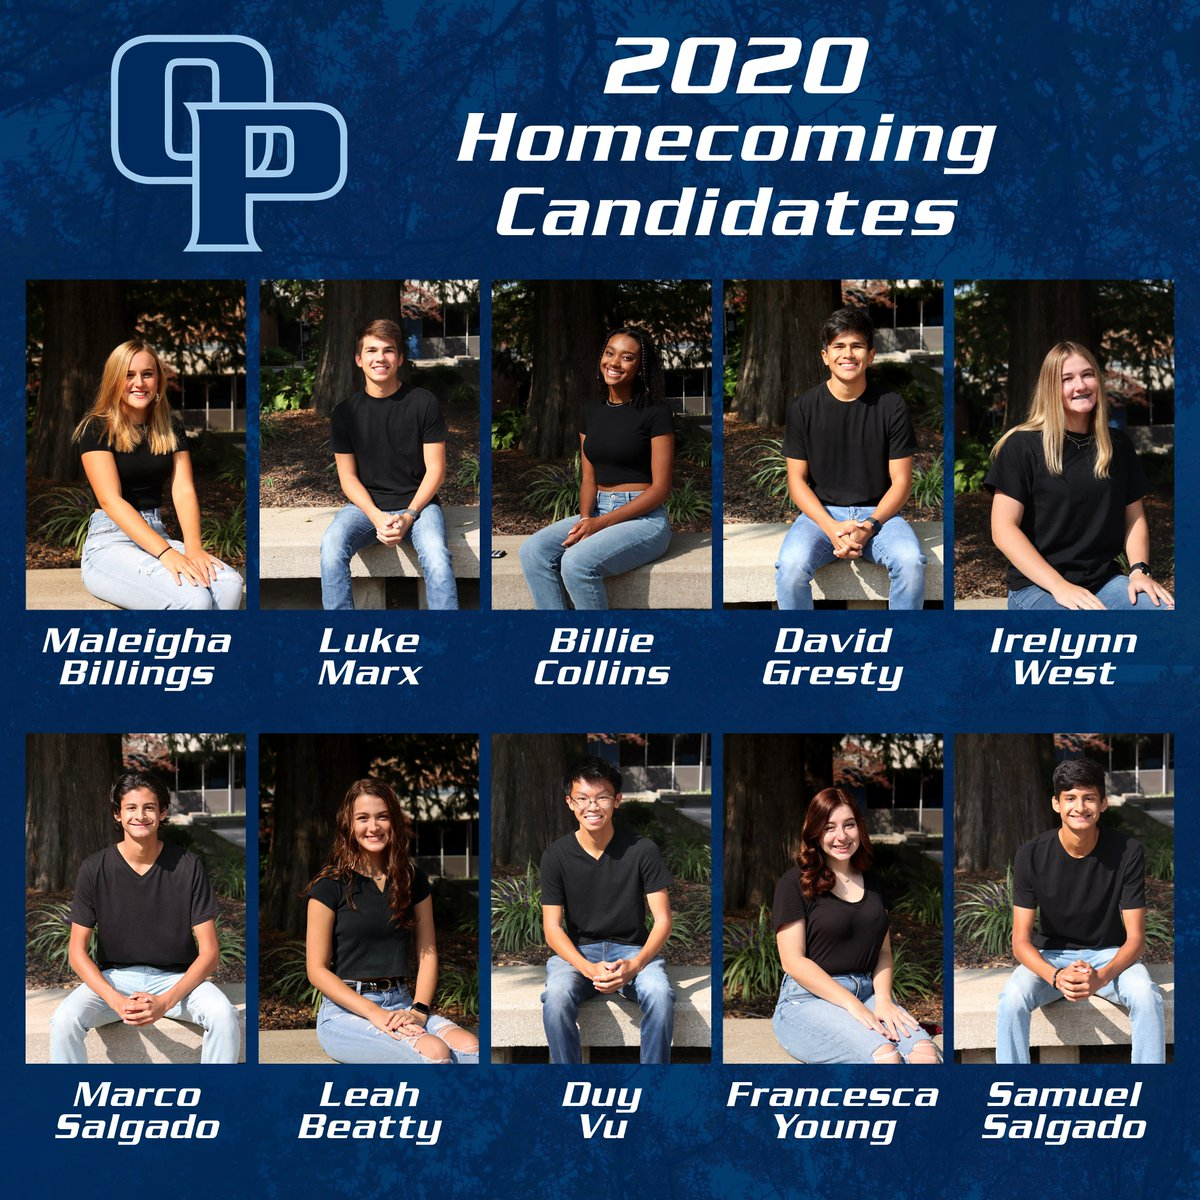 Oak Park High School will celebrate Homecoming today! Congratulations to all ten candidates representing their fellow Northmen. Tune in to the live stream of tonight's game at  to see the 2020 Homecoming King & Queen crowned at halftime! #ForTheFamily